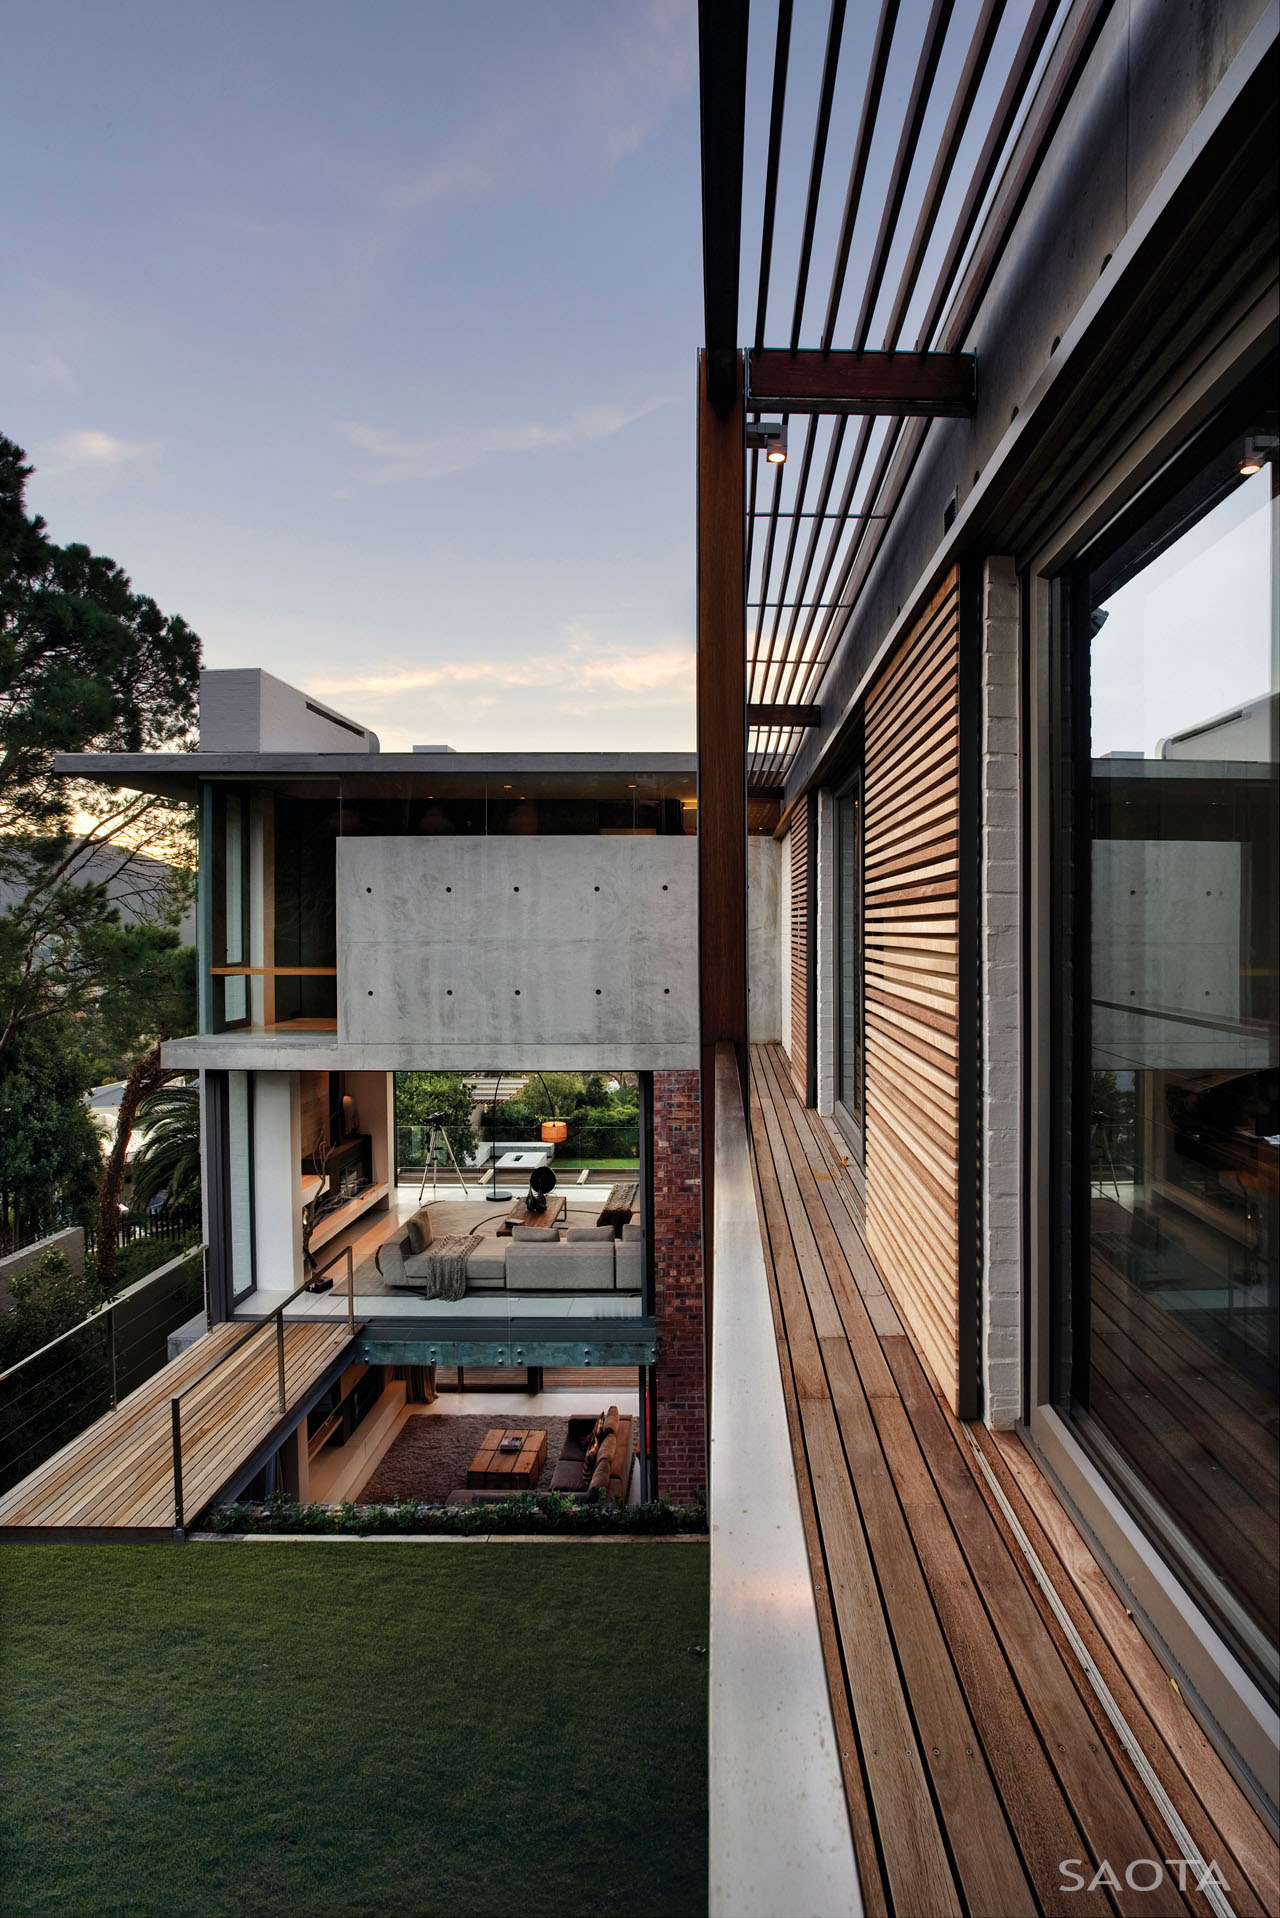 Glen 2961 House by SAOTA and Three 14 Architects